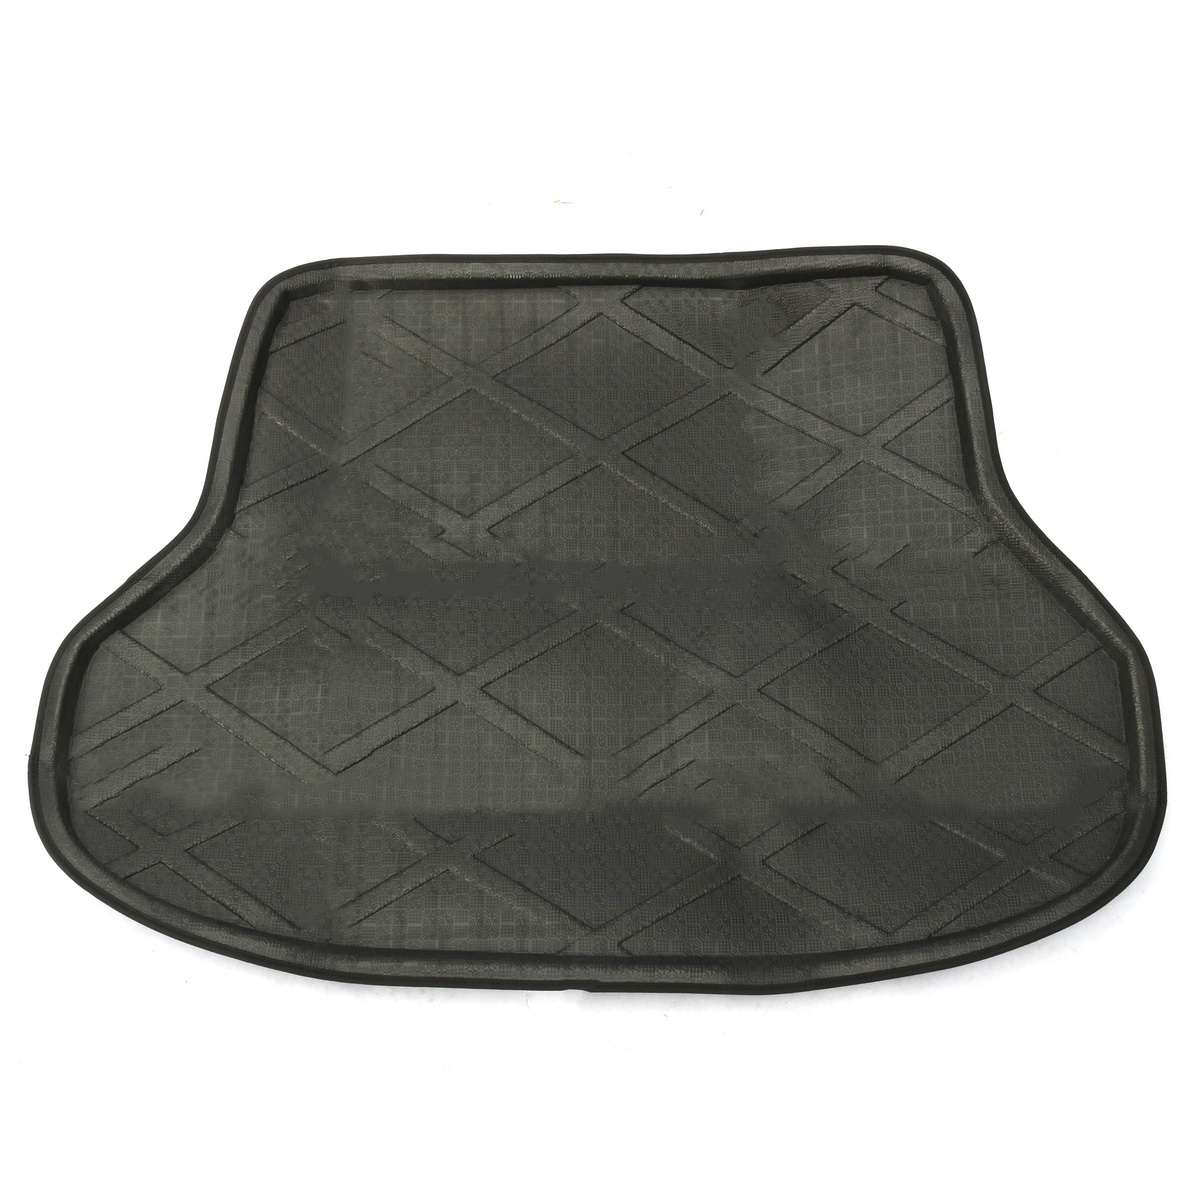 Cargo Boot Liner Tray For Lexus Rx330 Rx350 Rx400h 2003